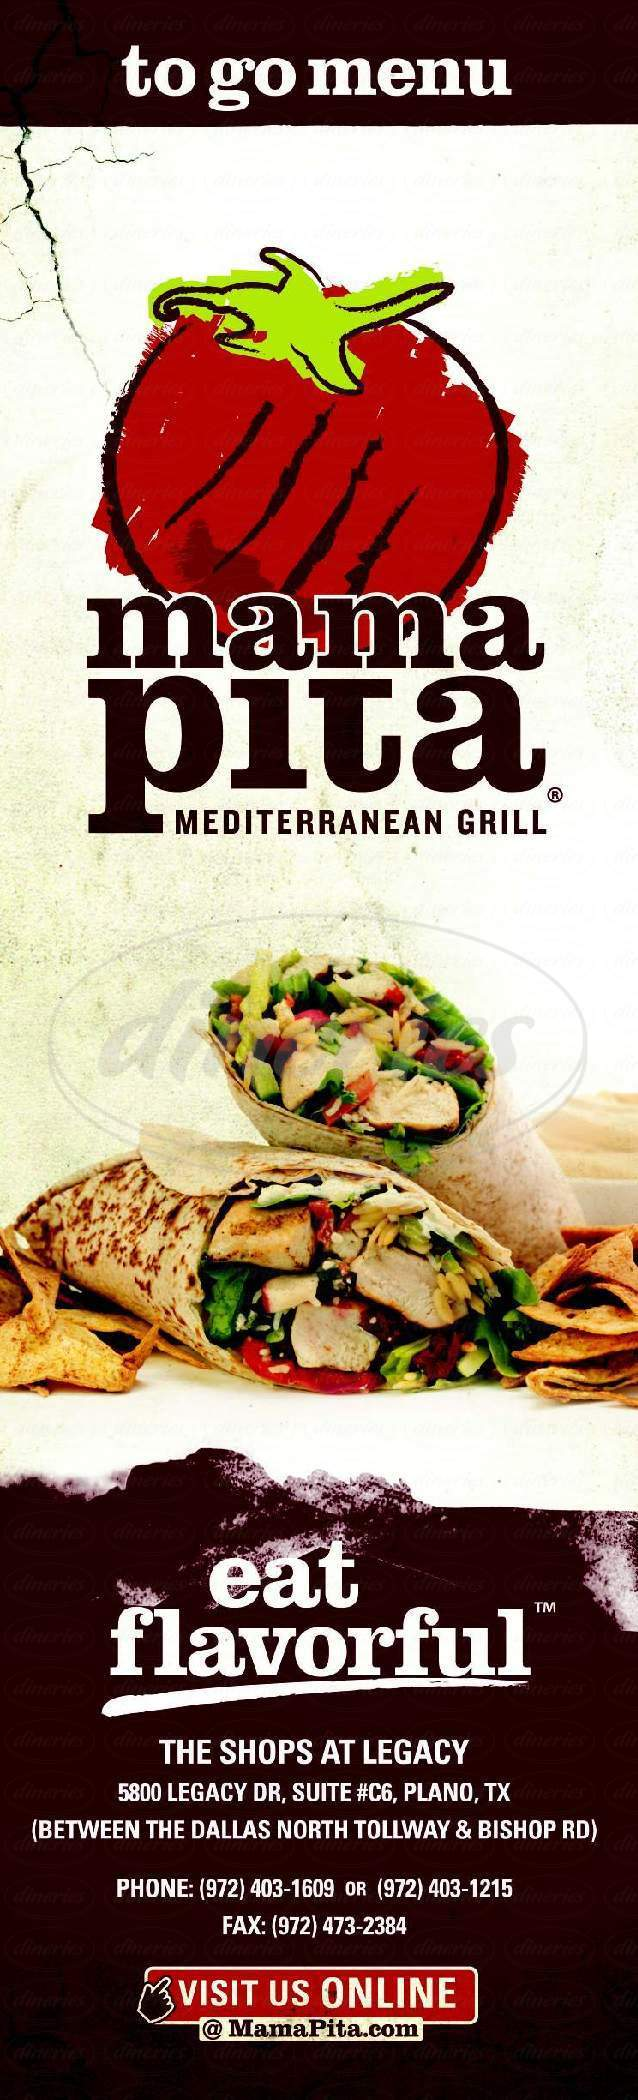 menu for Mama Pita Mediterranean Grill